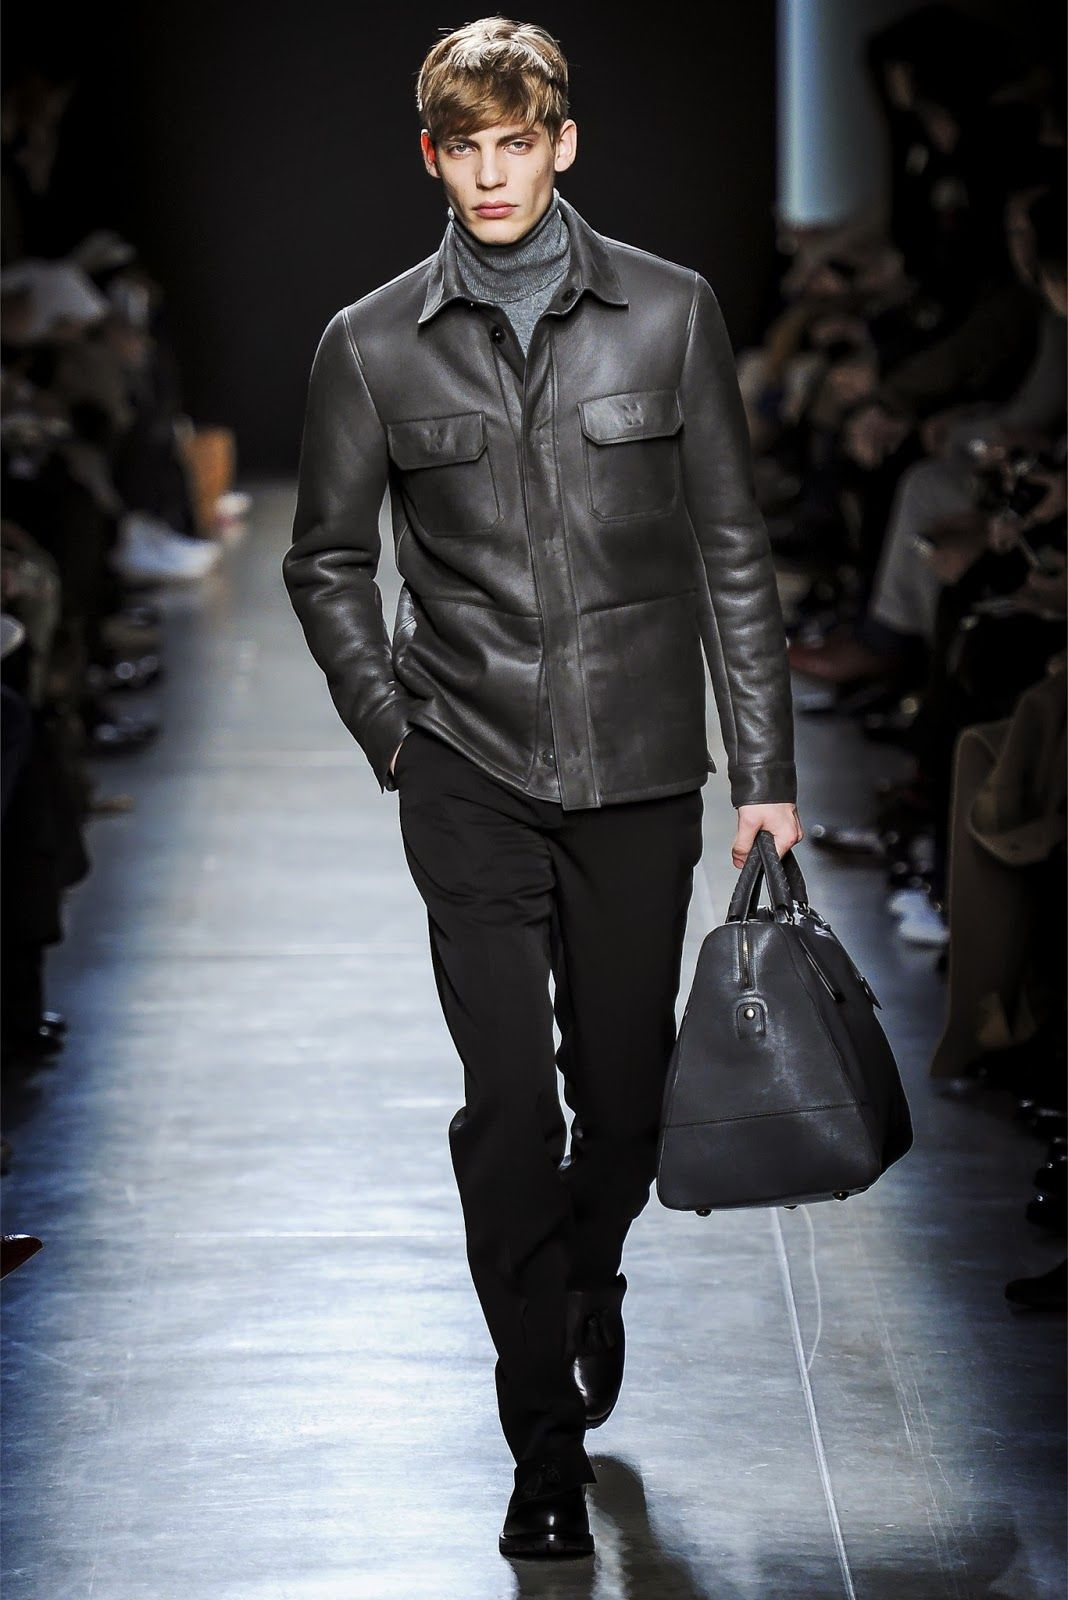 f8e3990484eff Bottega Veneta in Millan FW 2014. Matching leather jacket and leather bag  in black